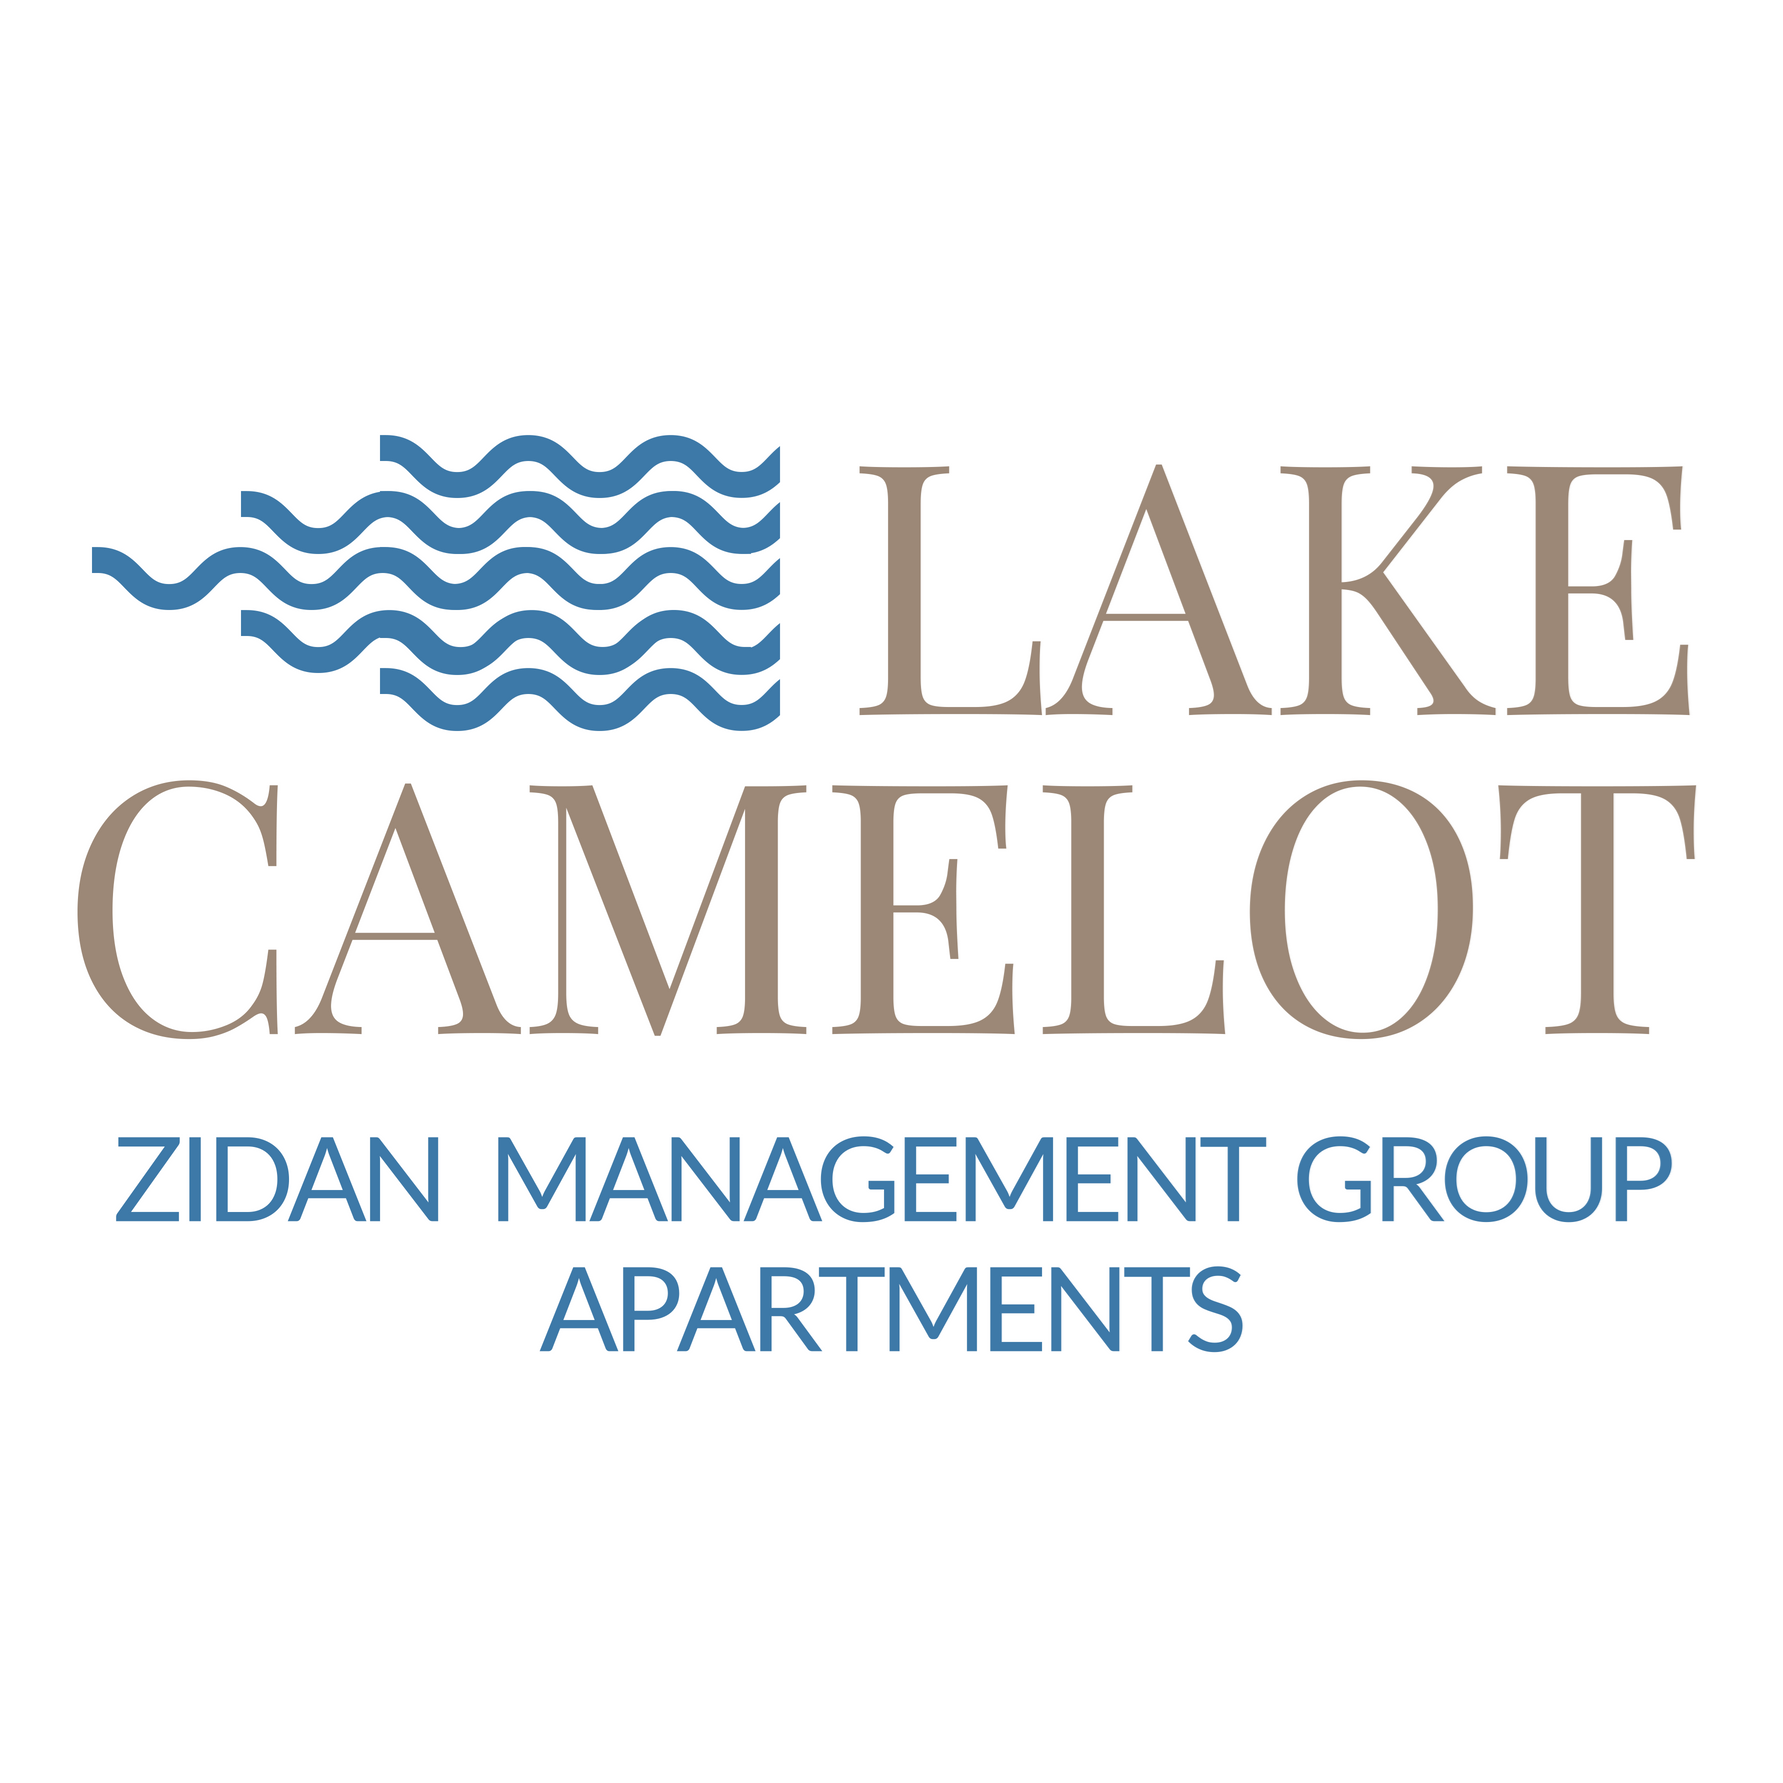 Lake Camelot Apartments